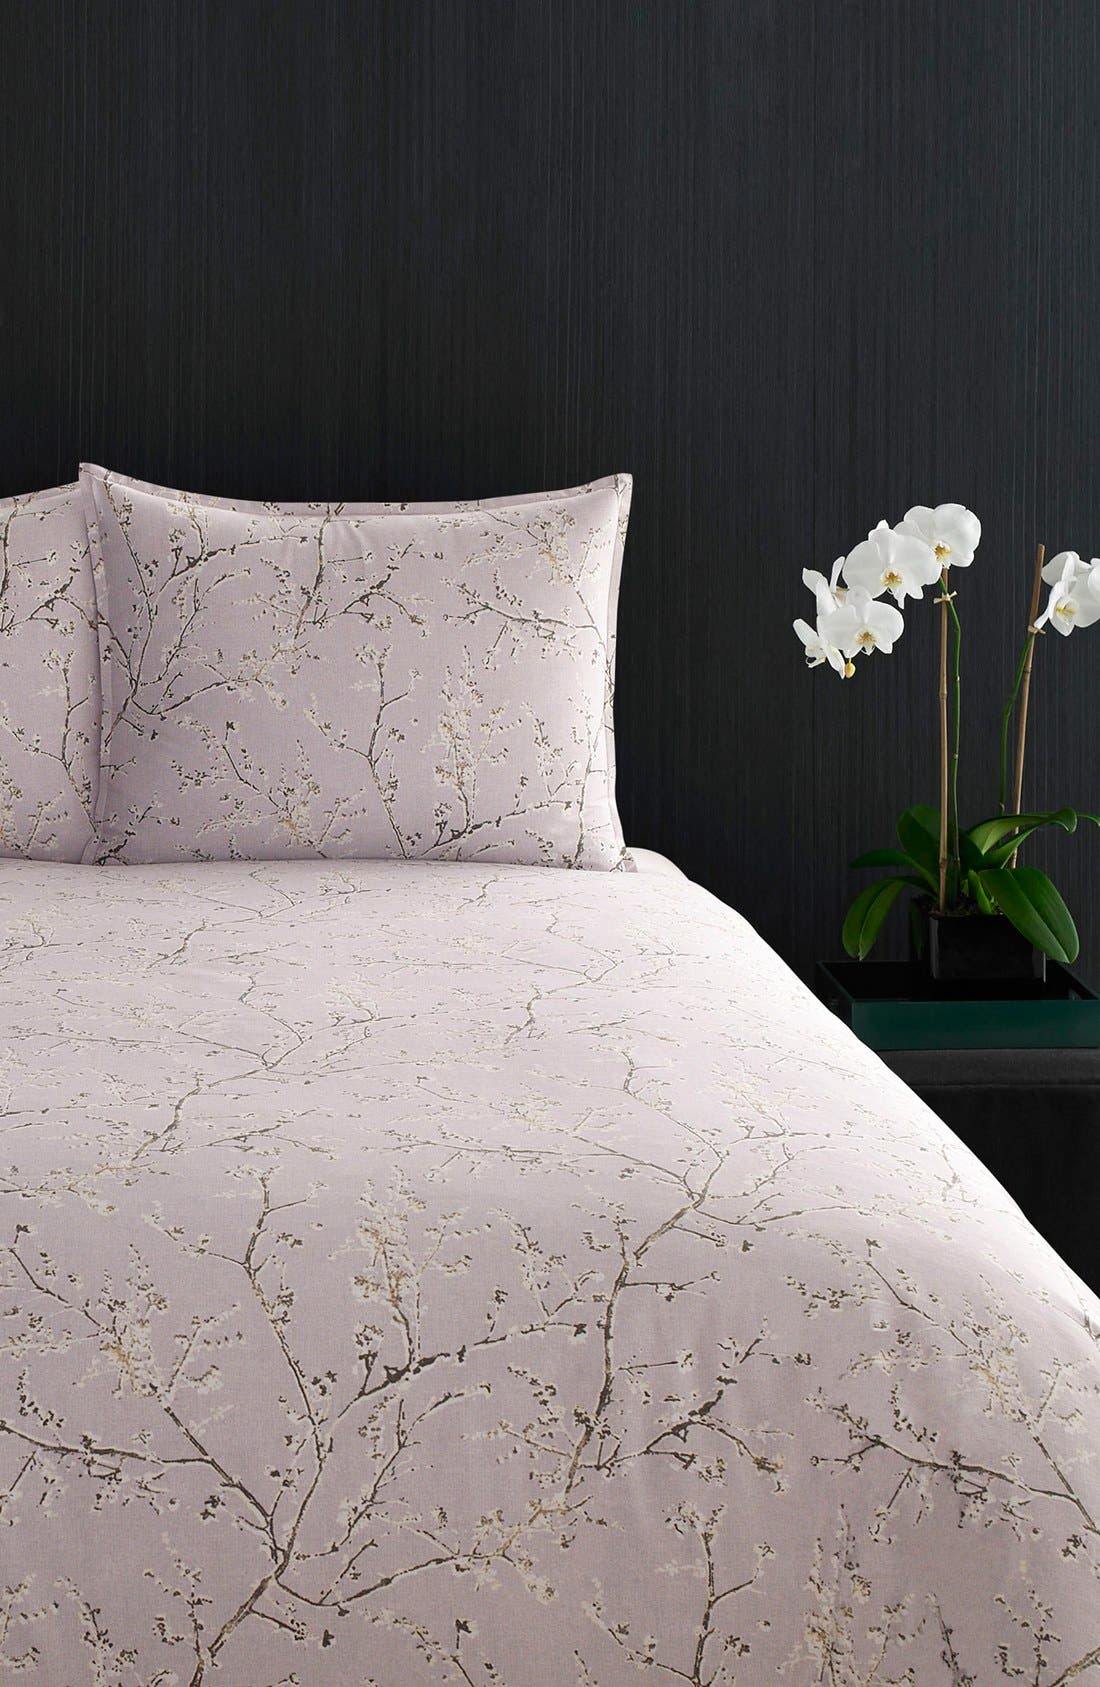 Alternate Image 1 Selected - Vera Wang 'Winter Blossoms' King Duvet Cover